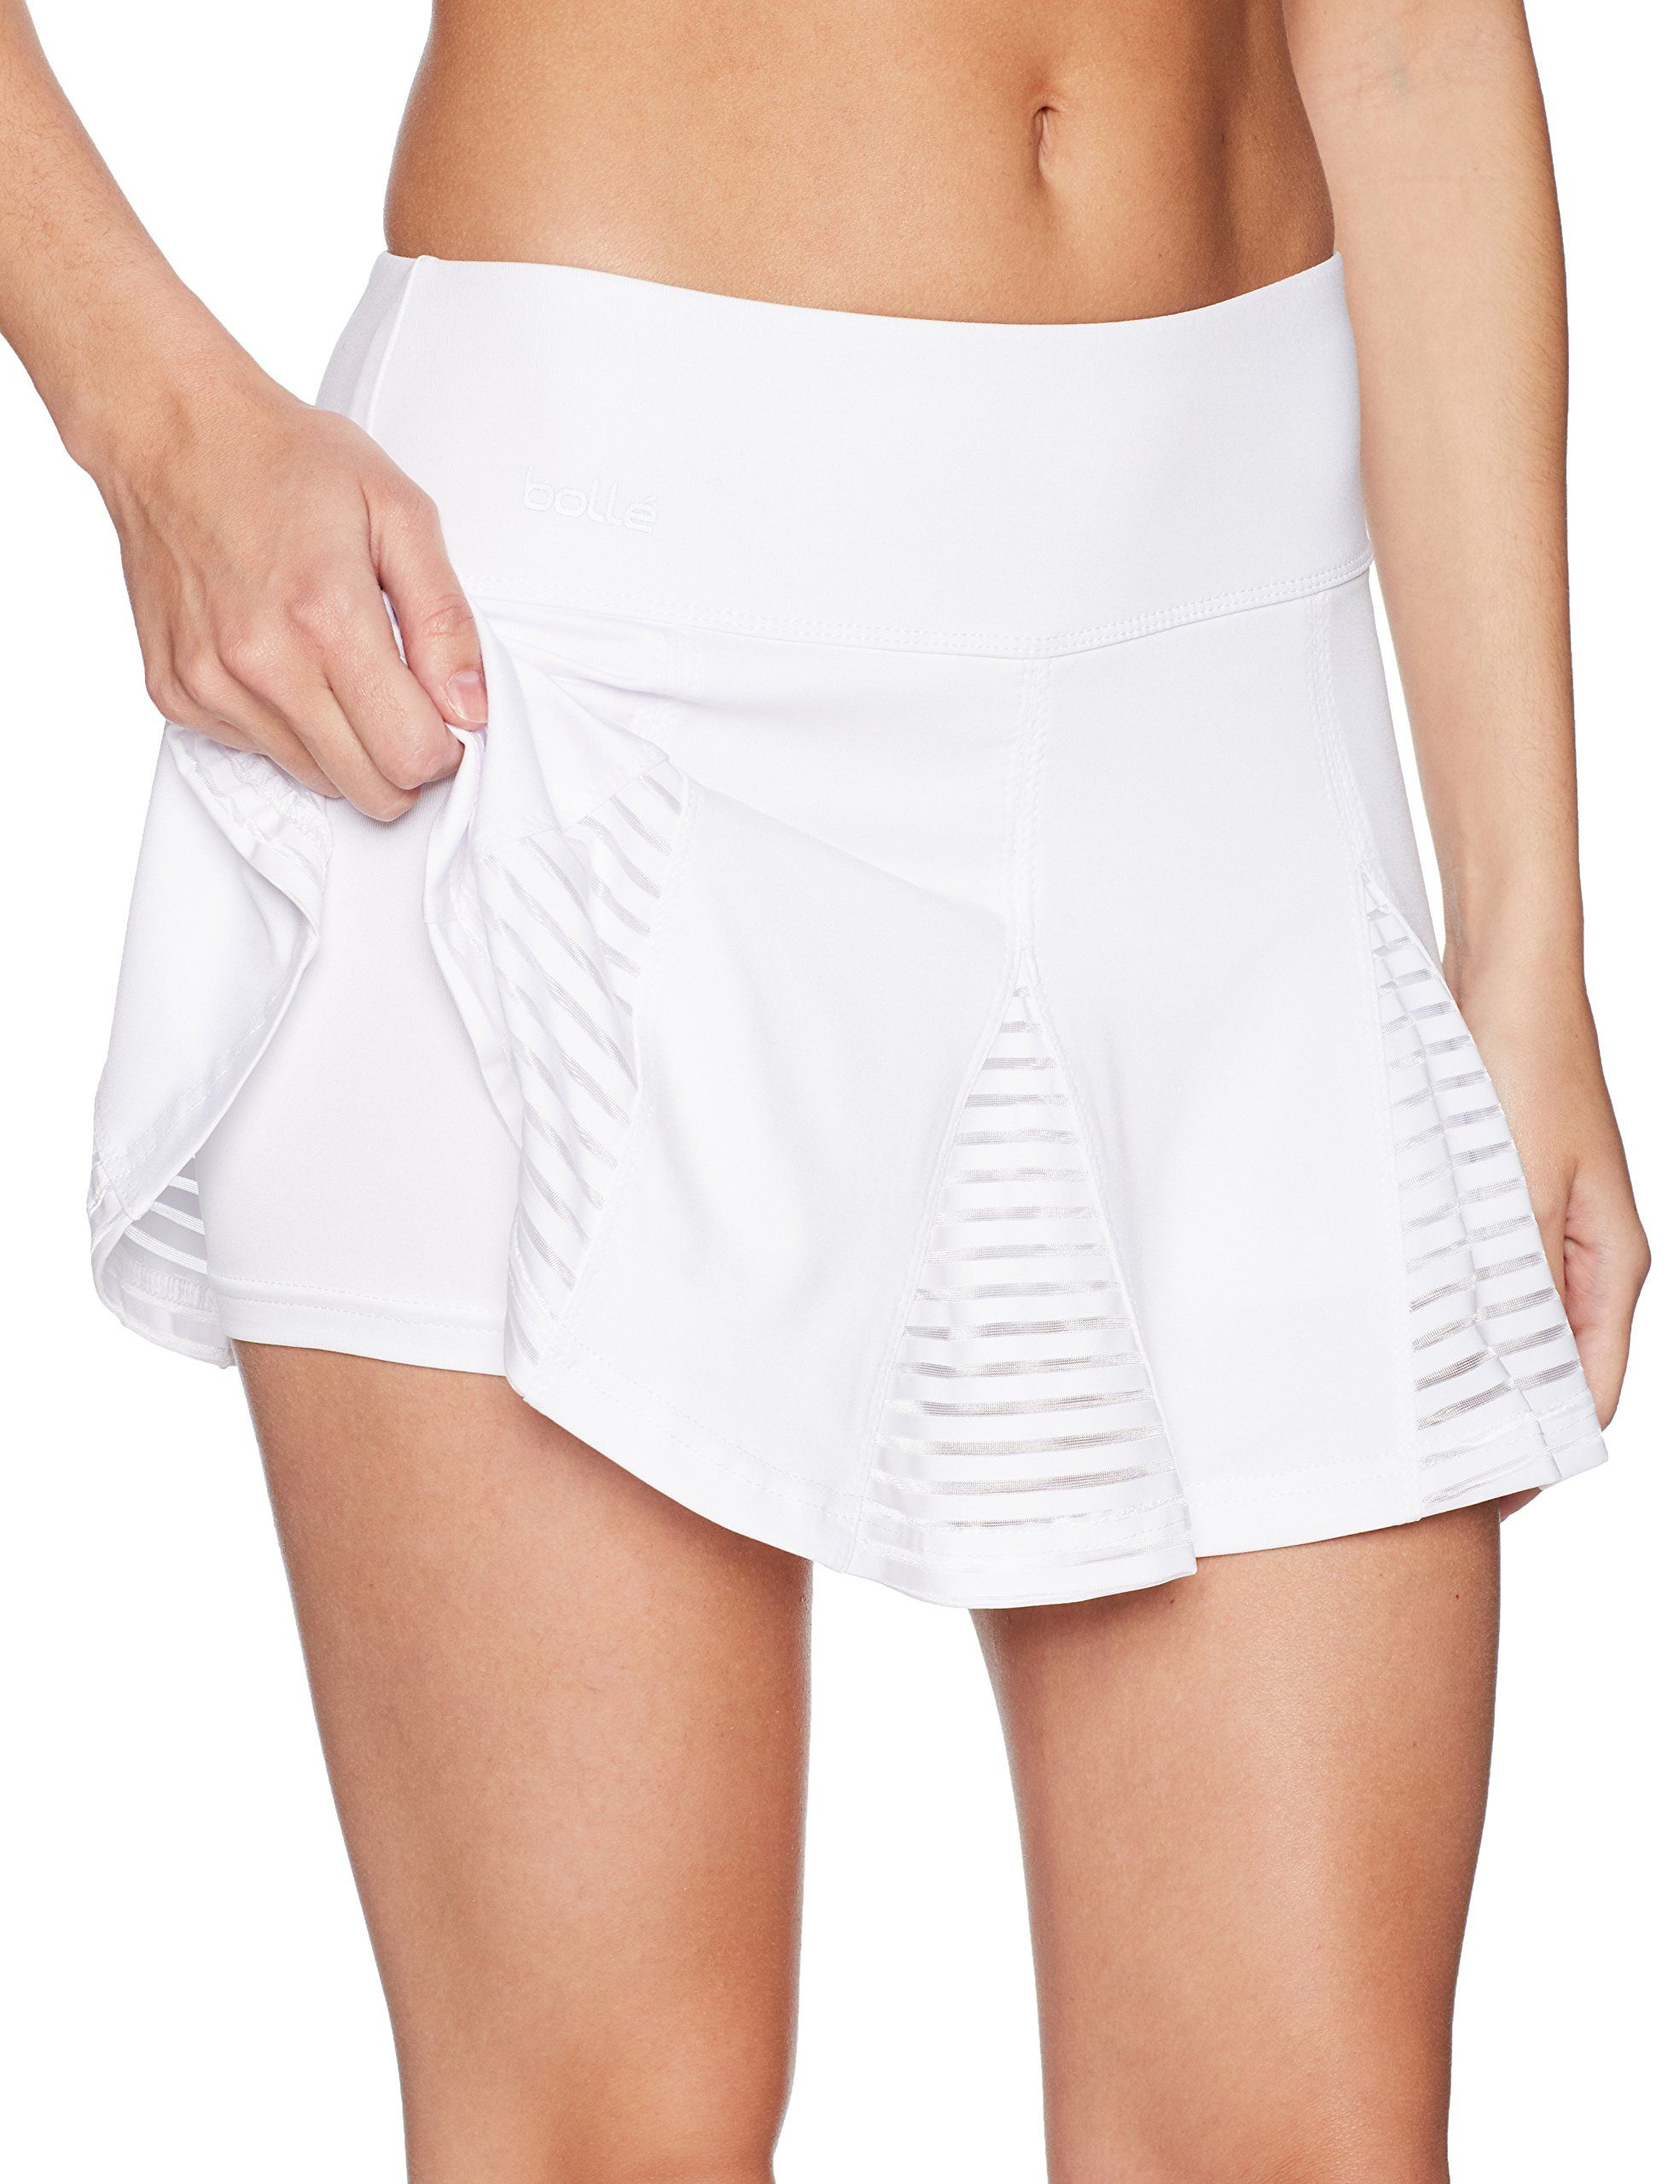 498981bca Bolle Womens Club Whites Pleated Athletic Skirt with Attached Shorts Mesh  Stripe InsetsIdeal White XLarge *** Learn more testimonials of the product  by ...